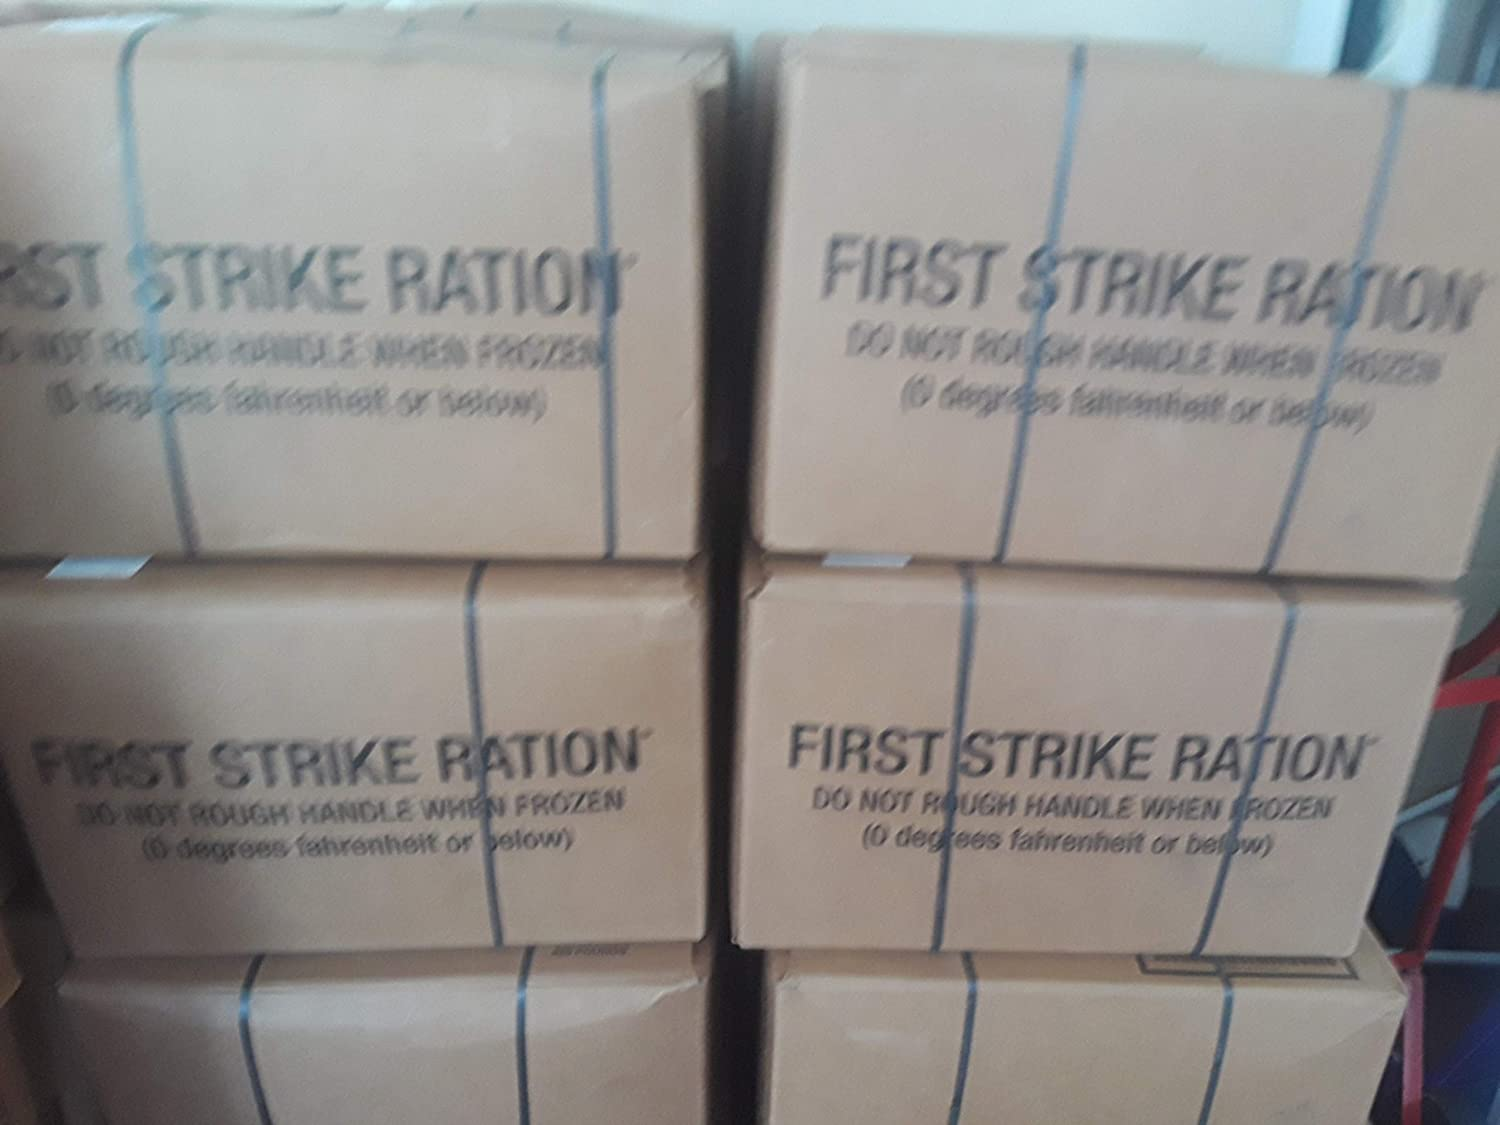 FULL CASE 9 MEALS FIRST STRIKE RATIONS INSP DATE 2020